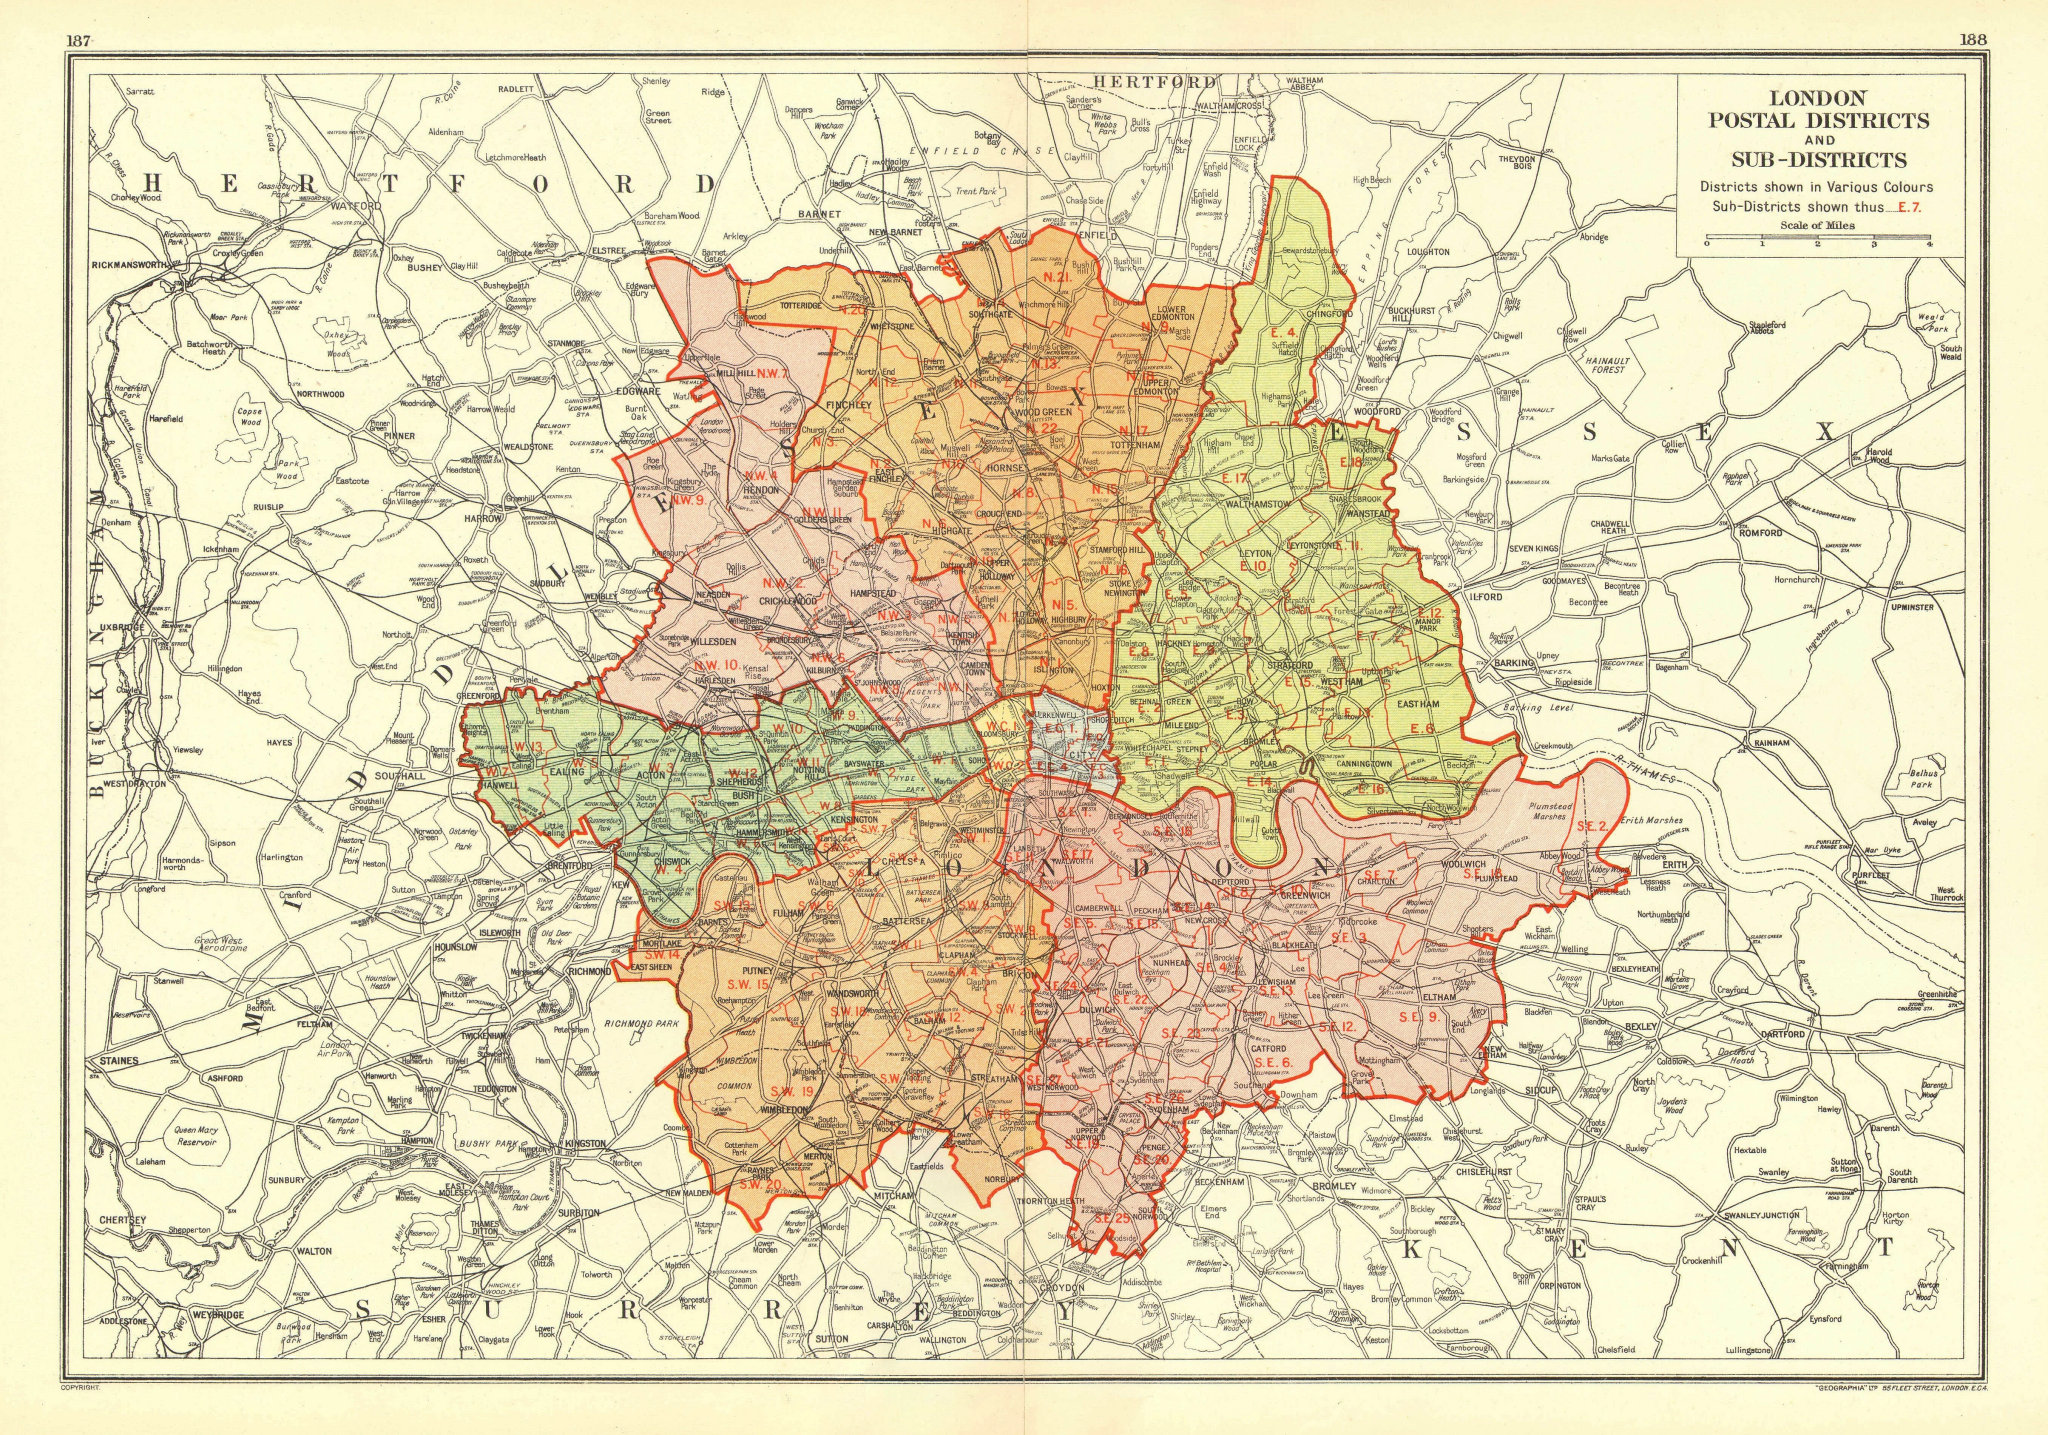 Associate Product LONDON. Postal Districts and Sub-Districts. Postcodes 1937 old vintage map